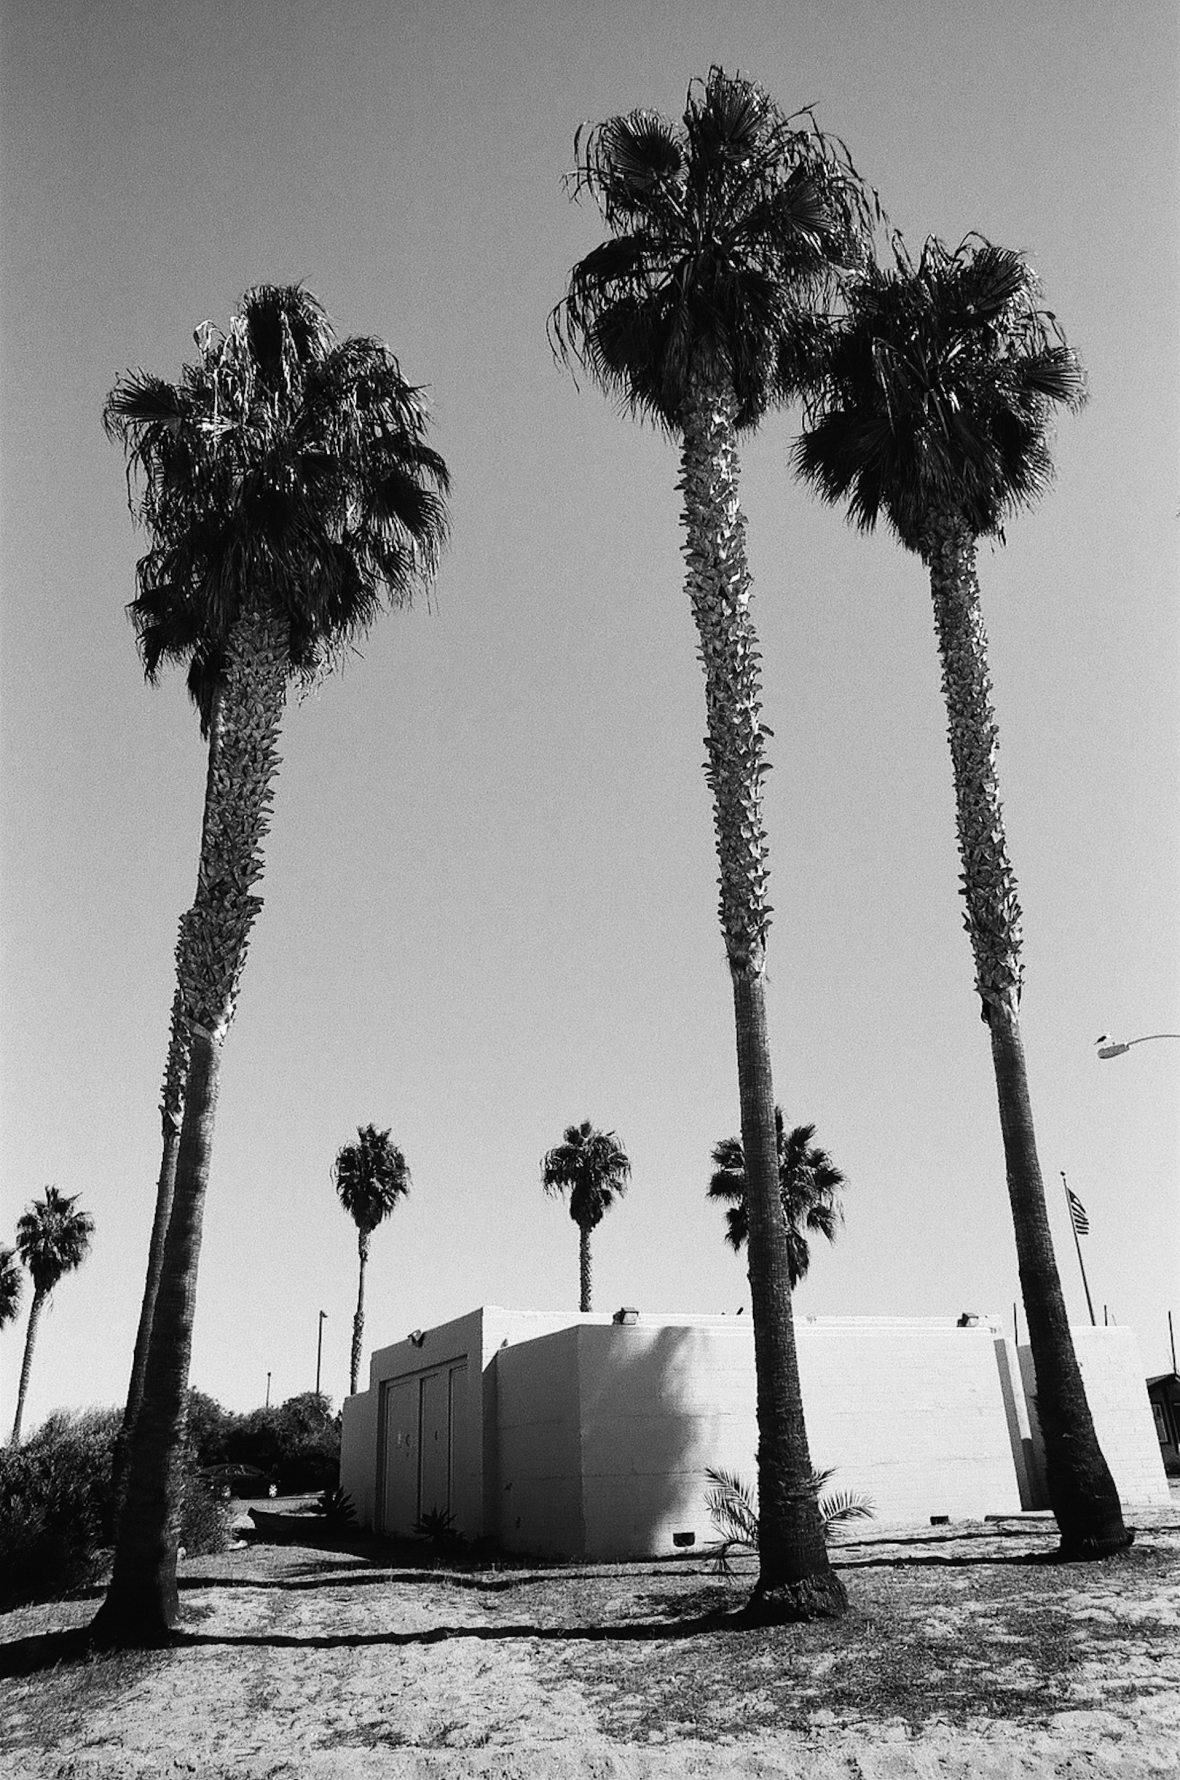 35mm film photography Kodak Tri-X black and white Mission Bay Beach Brutalist Architecture Nikon F2